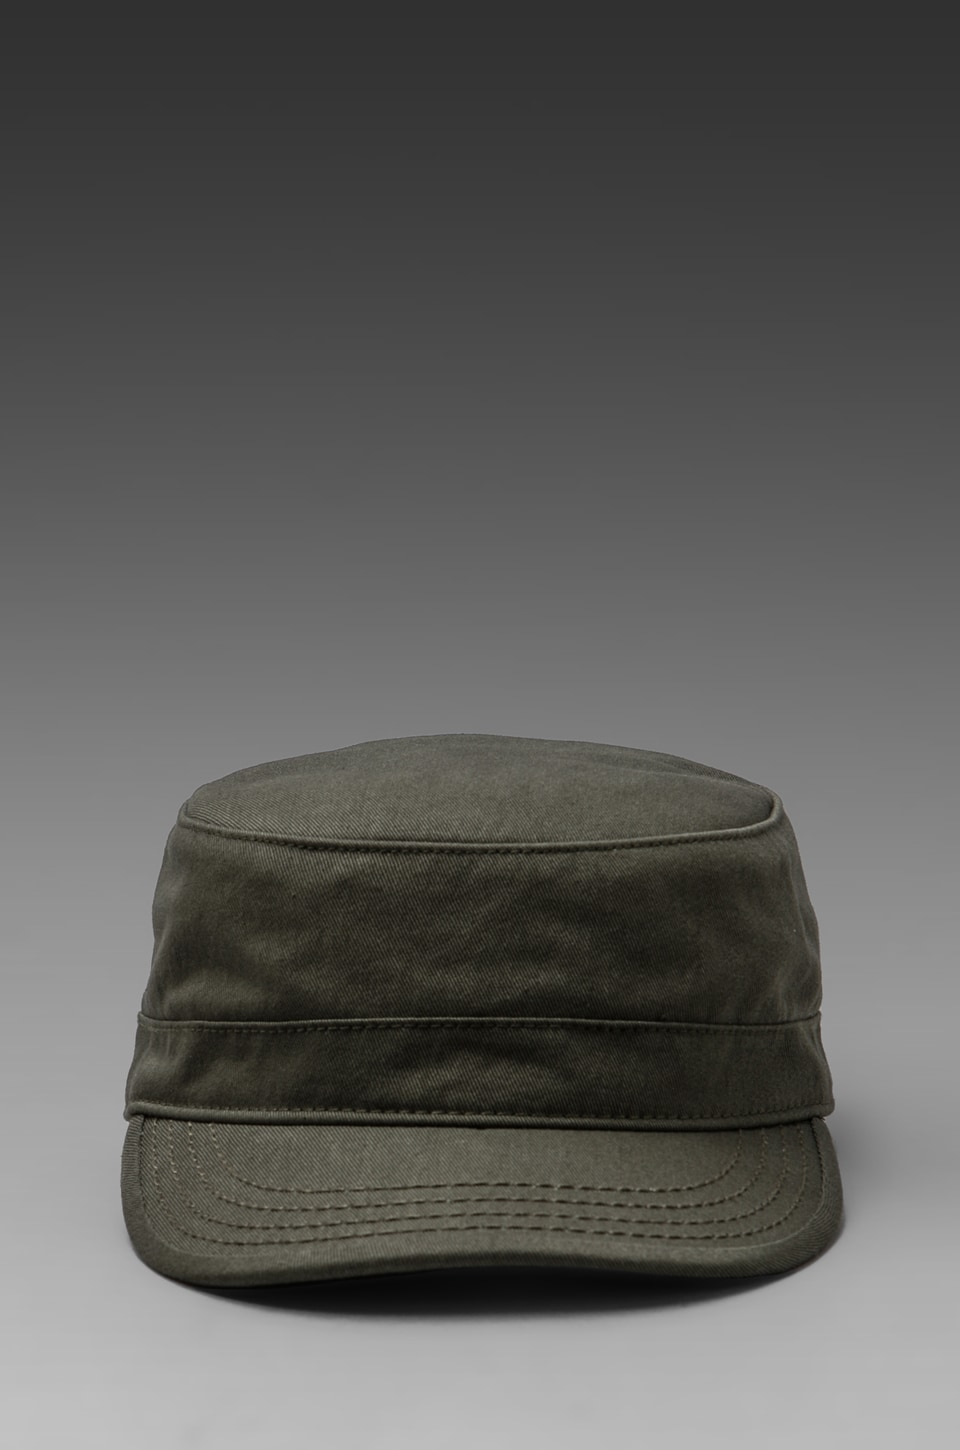 Diesel Celove Twill Cap in Green/ Jungle